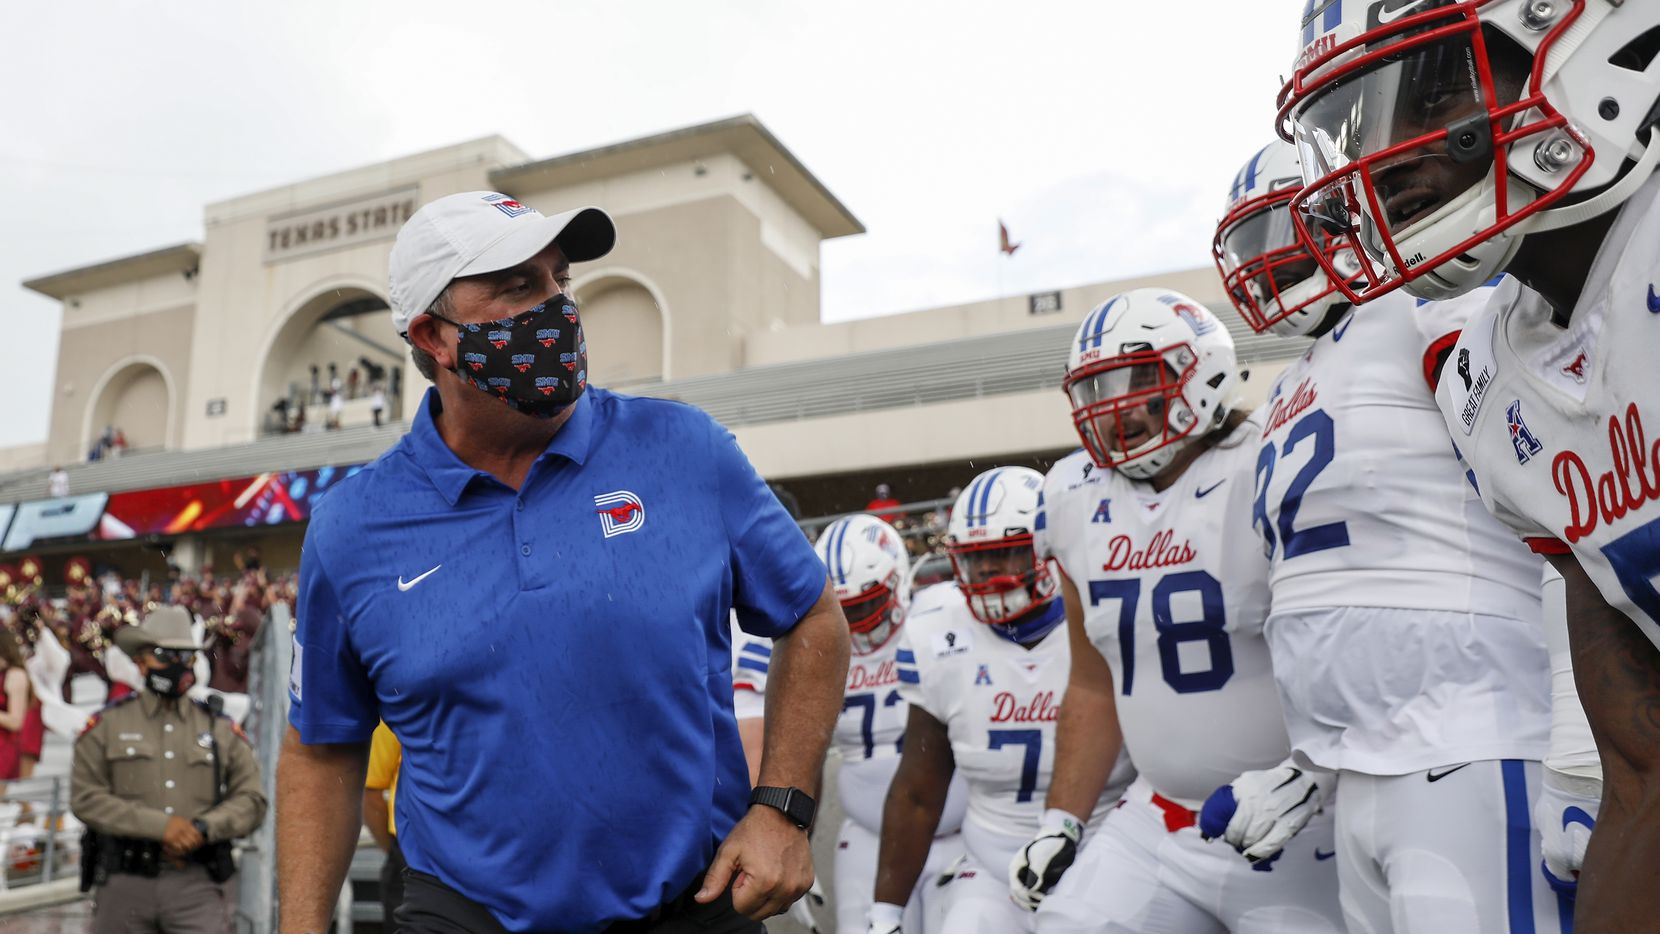 SAN MARCOS, TEXAS - SEPTEMBER 05: Head coach Sonny Dykes of the Southern Methodist Mustangs leads the team on to the field before the game against the Texas State Bobcats at Bobcat Stadium on September 05, 2020 in San Marcos, Texas. (Photo by Tim Warner/Getty Images)